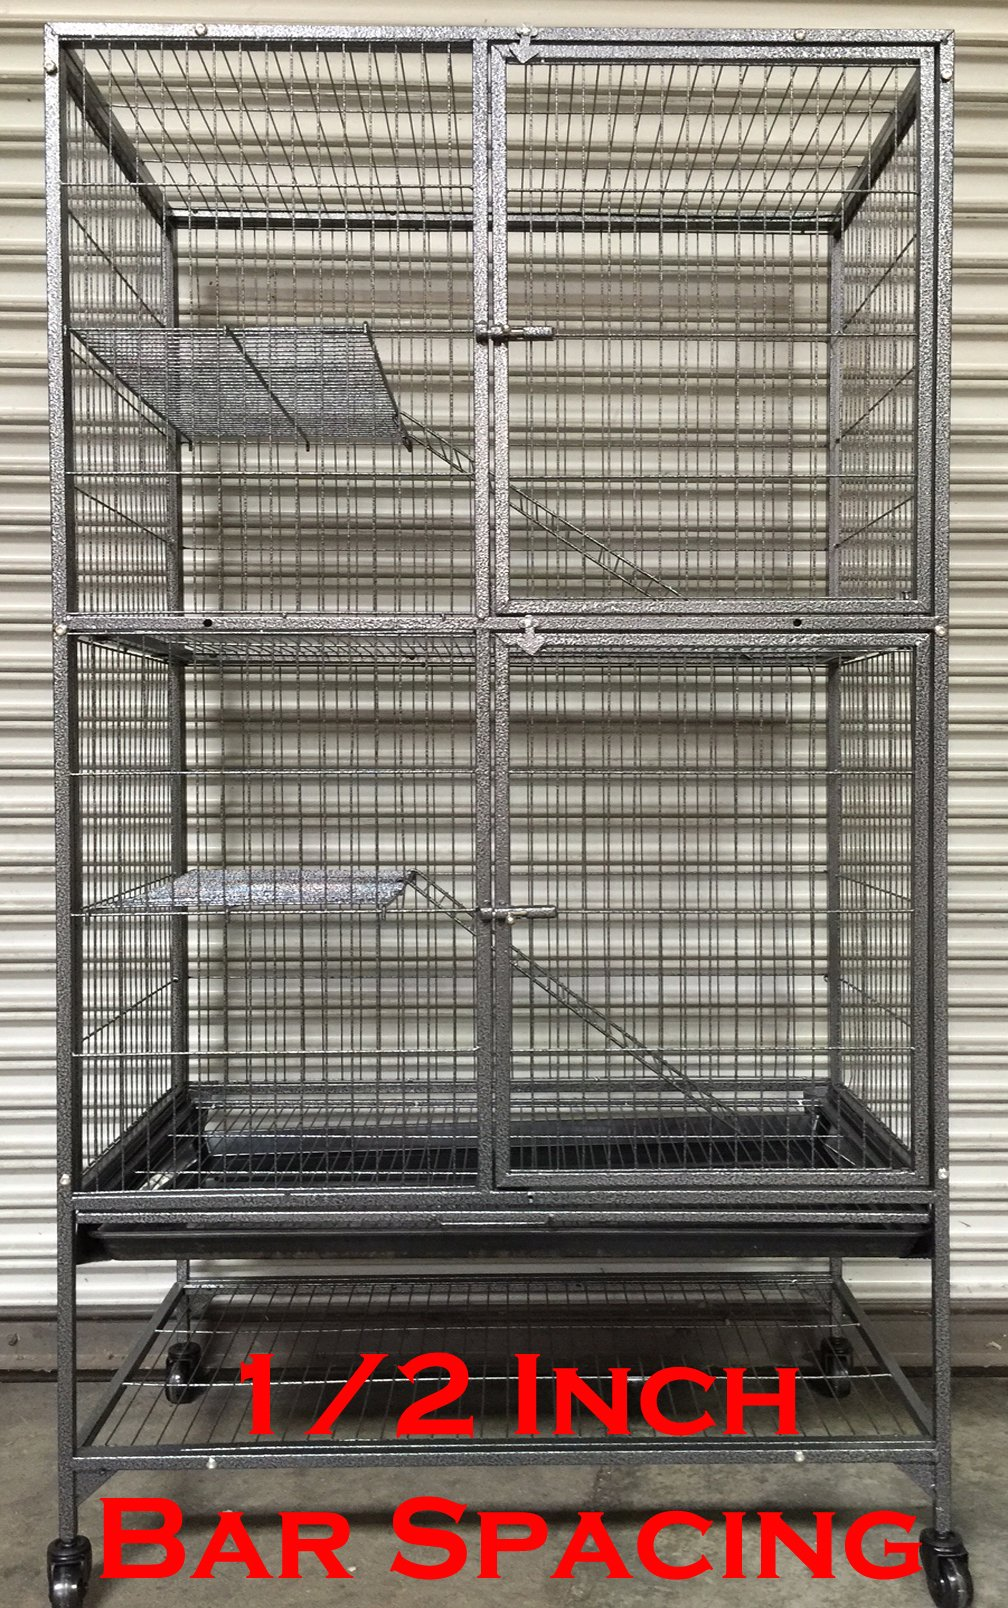 NEW Large Two Story Ferret/Chinchilla/Rat/Dagu/Birds Small Animal Cage 1/2'' Bar Spacing